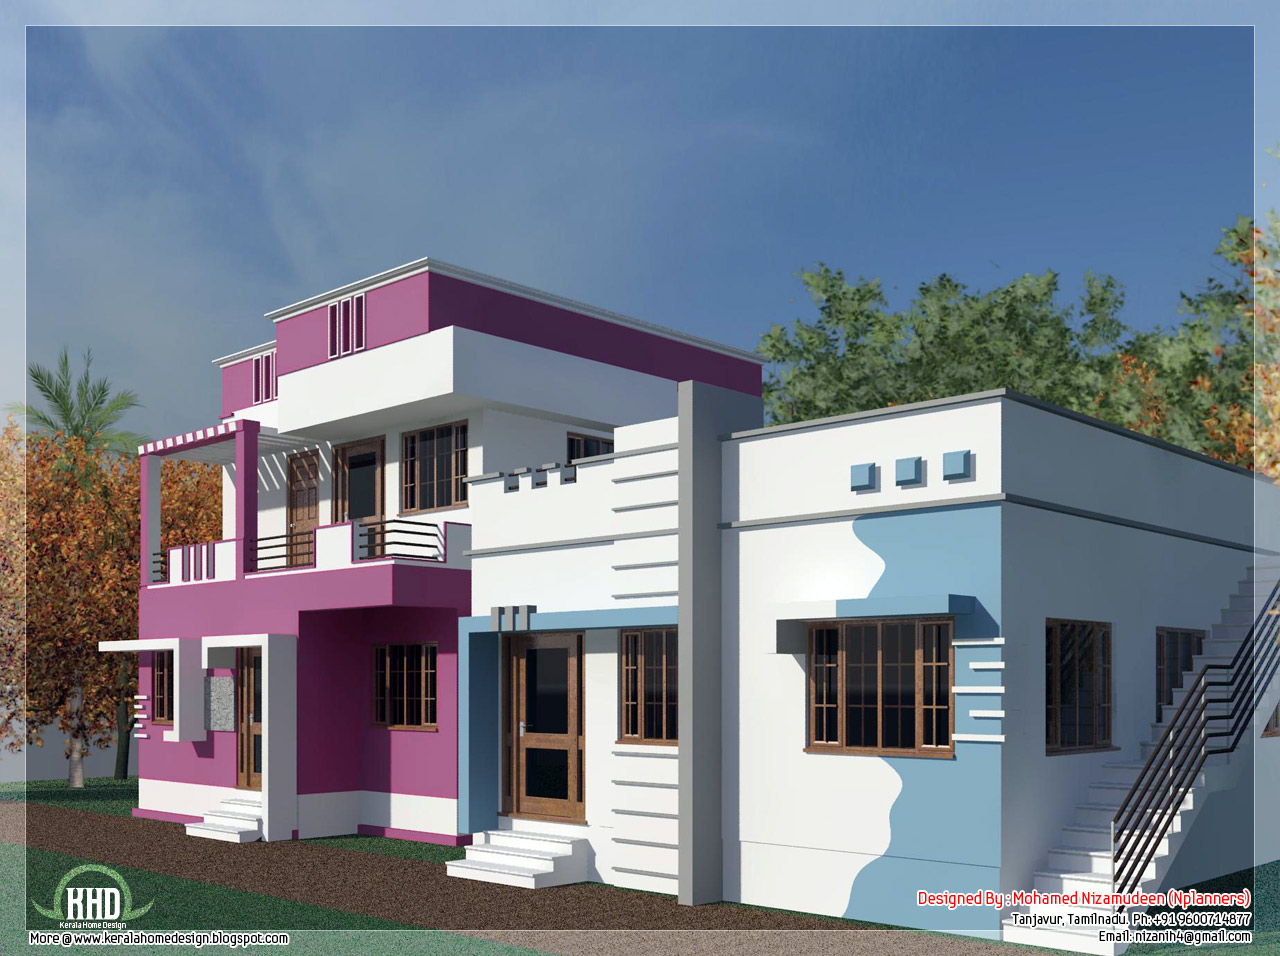 Tamilnadu model home design in 3000 kerala home New home models and plans